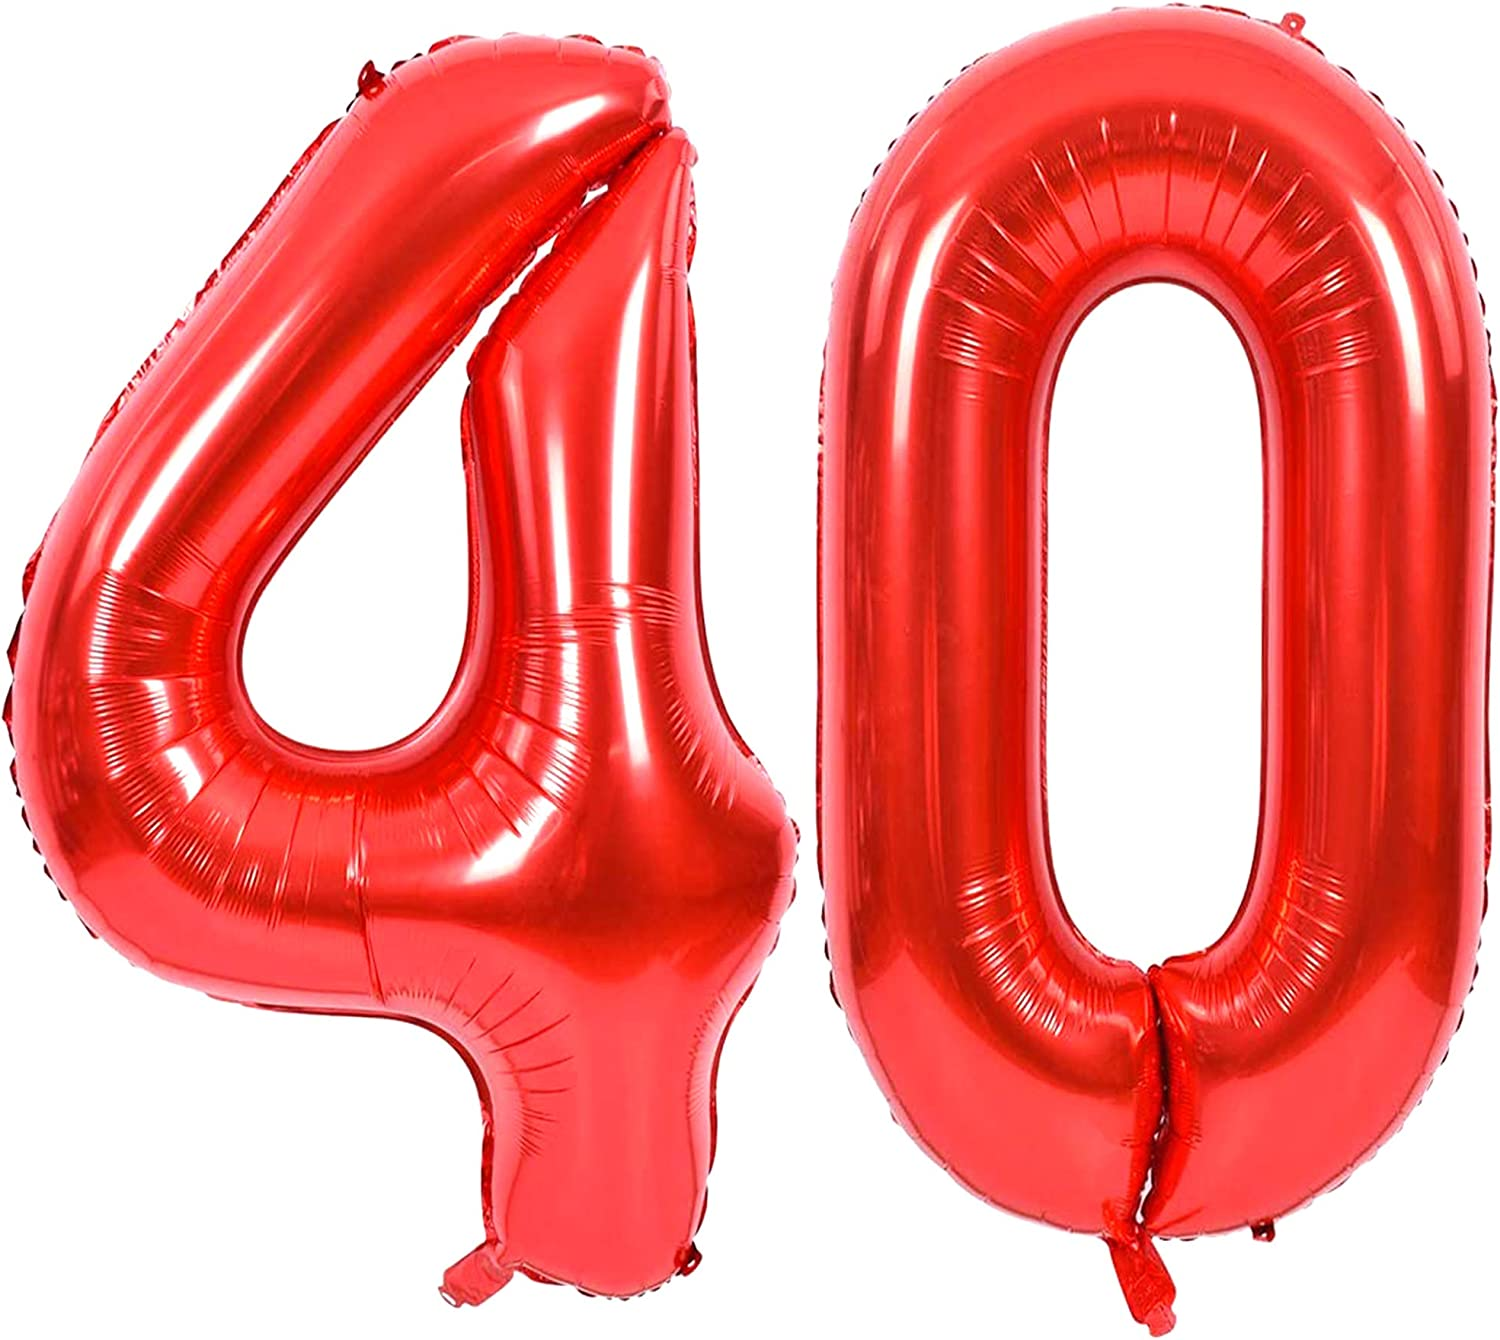 16 inch 40 Hot Red Number Balloons 40th Birthday Party Anniversary Foil Balloon